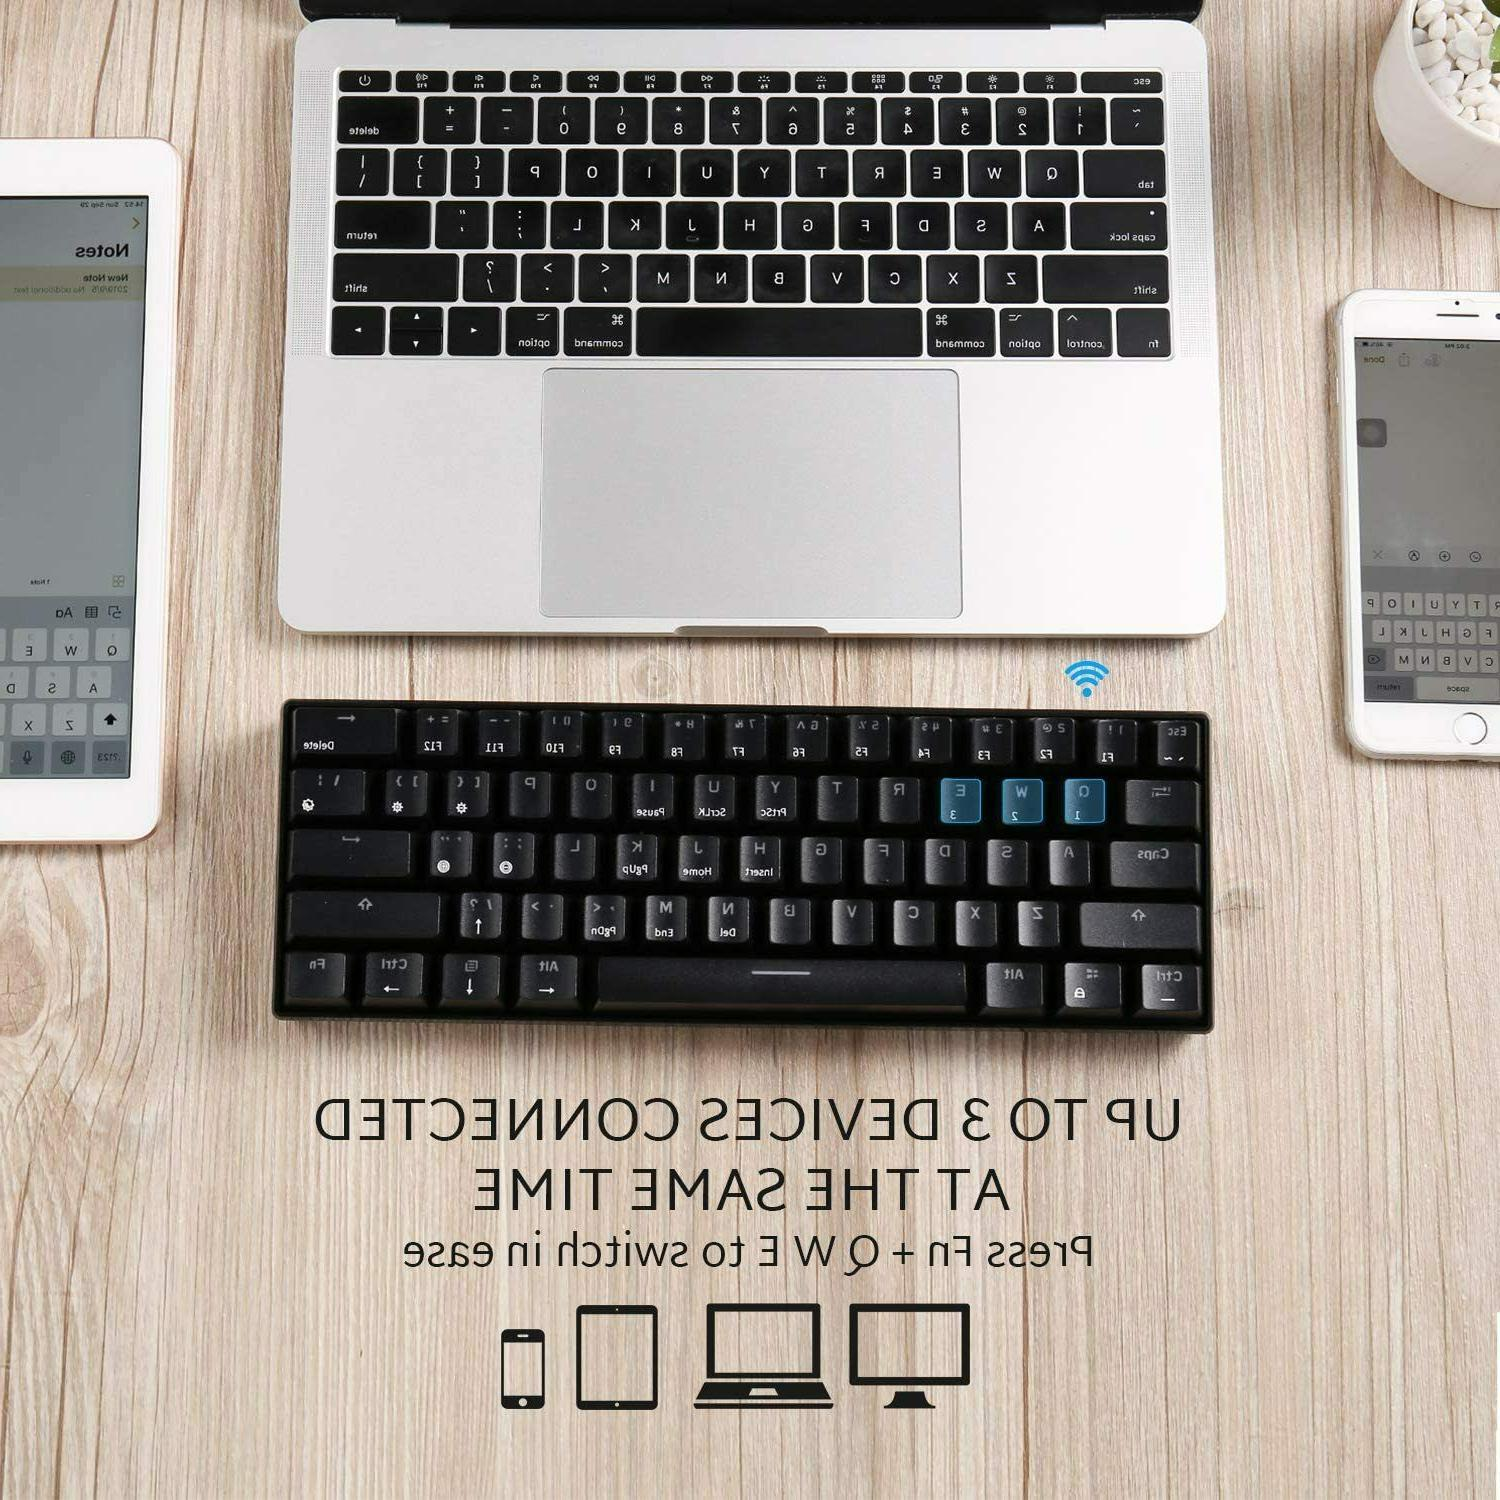 RK ROYAL Wireless Keyboard,UltraCompact BrownS